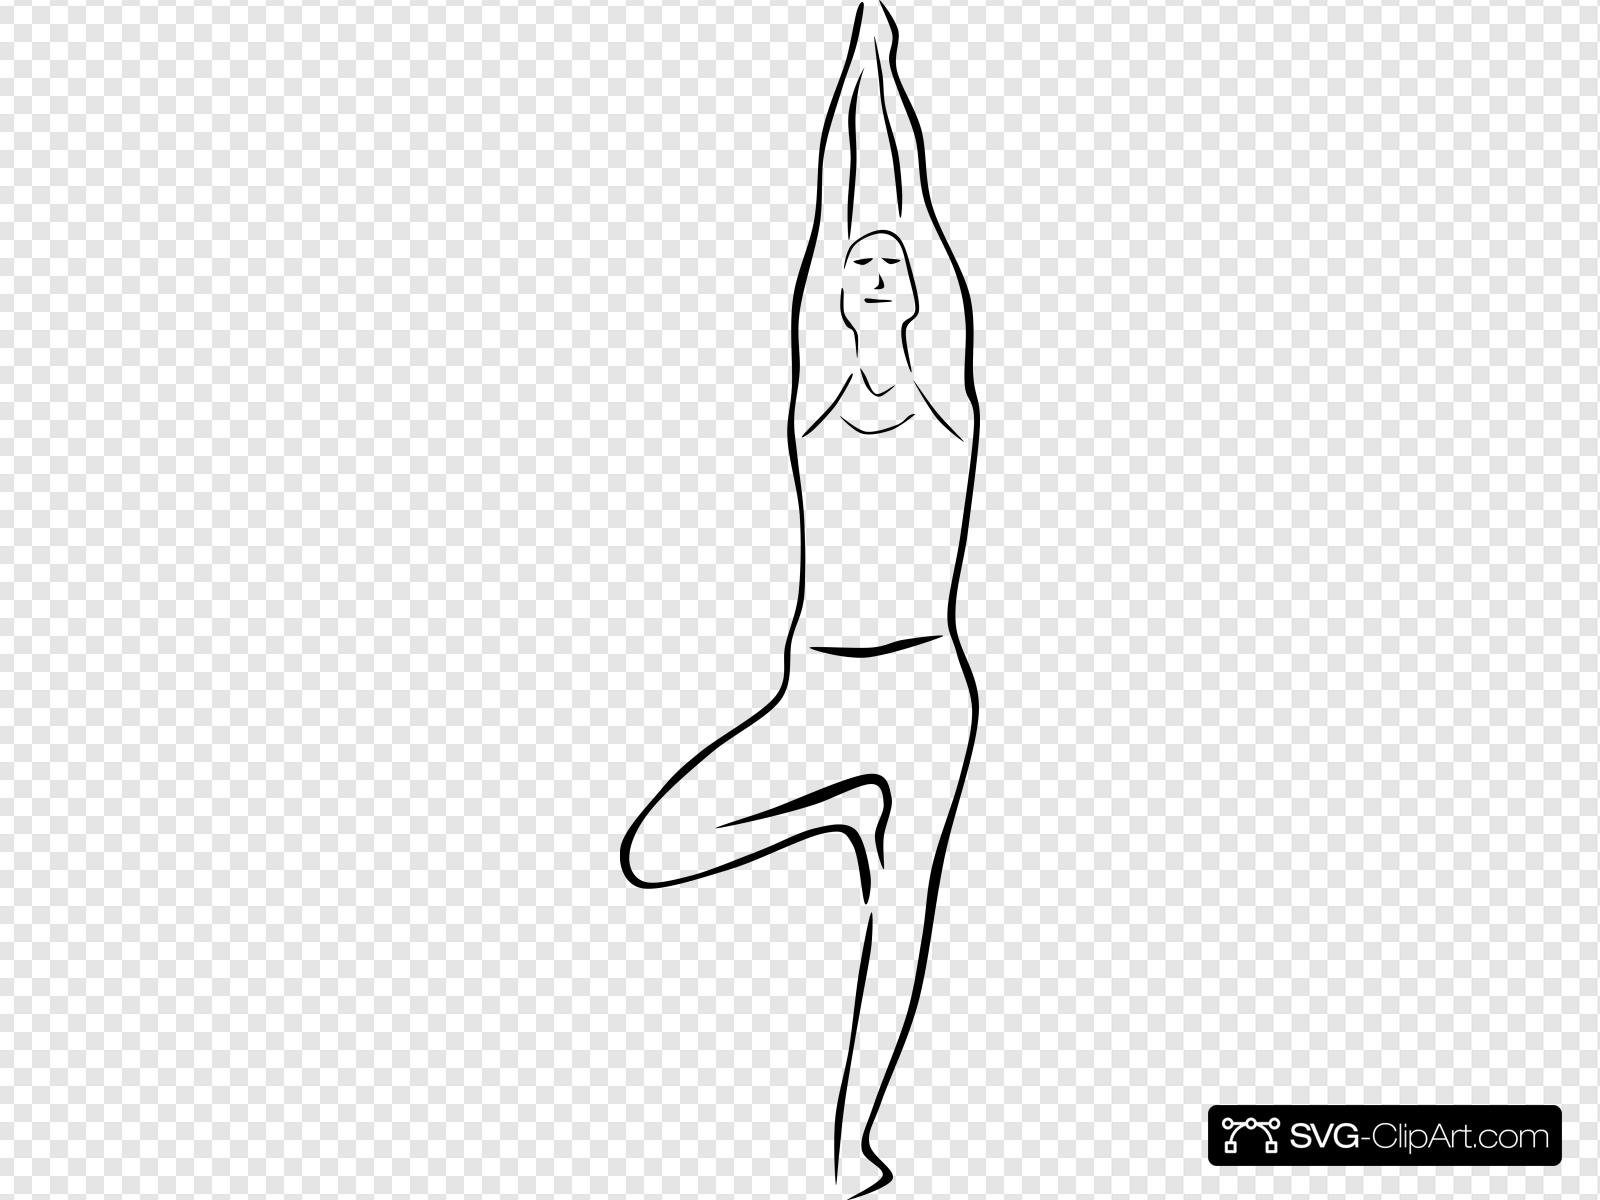 Yoga Poses Stylized Clip art, Icon and SVG.